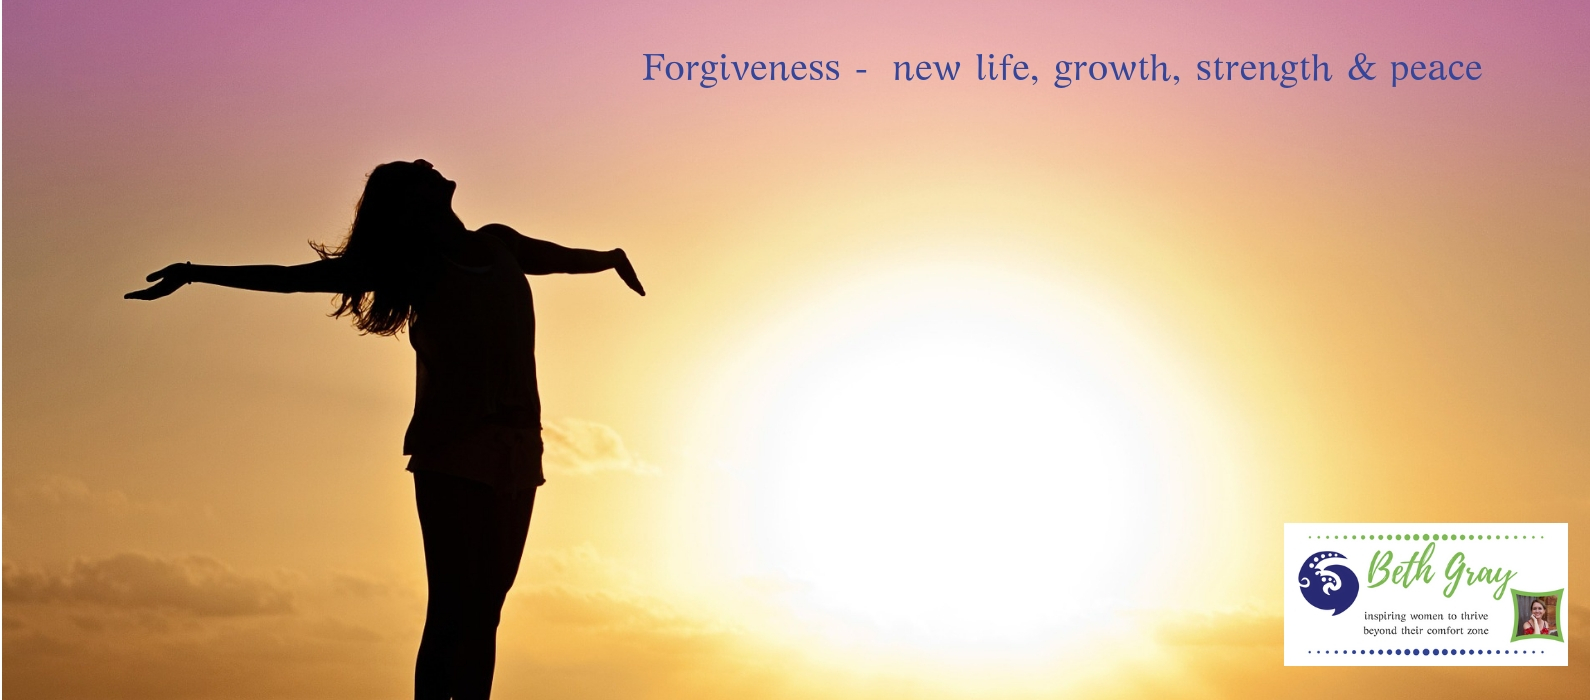 Forgiveness, new life, growth, strength, peace, release, letting go, let go, lesson, Ho'oponopono, I love you, I'm sorry, Please forgive me, thank you